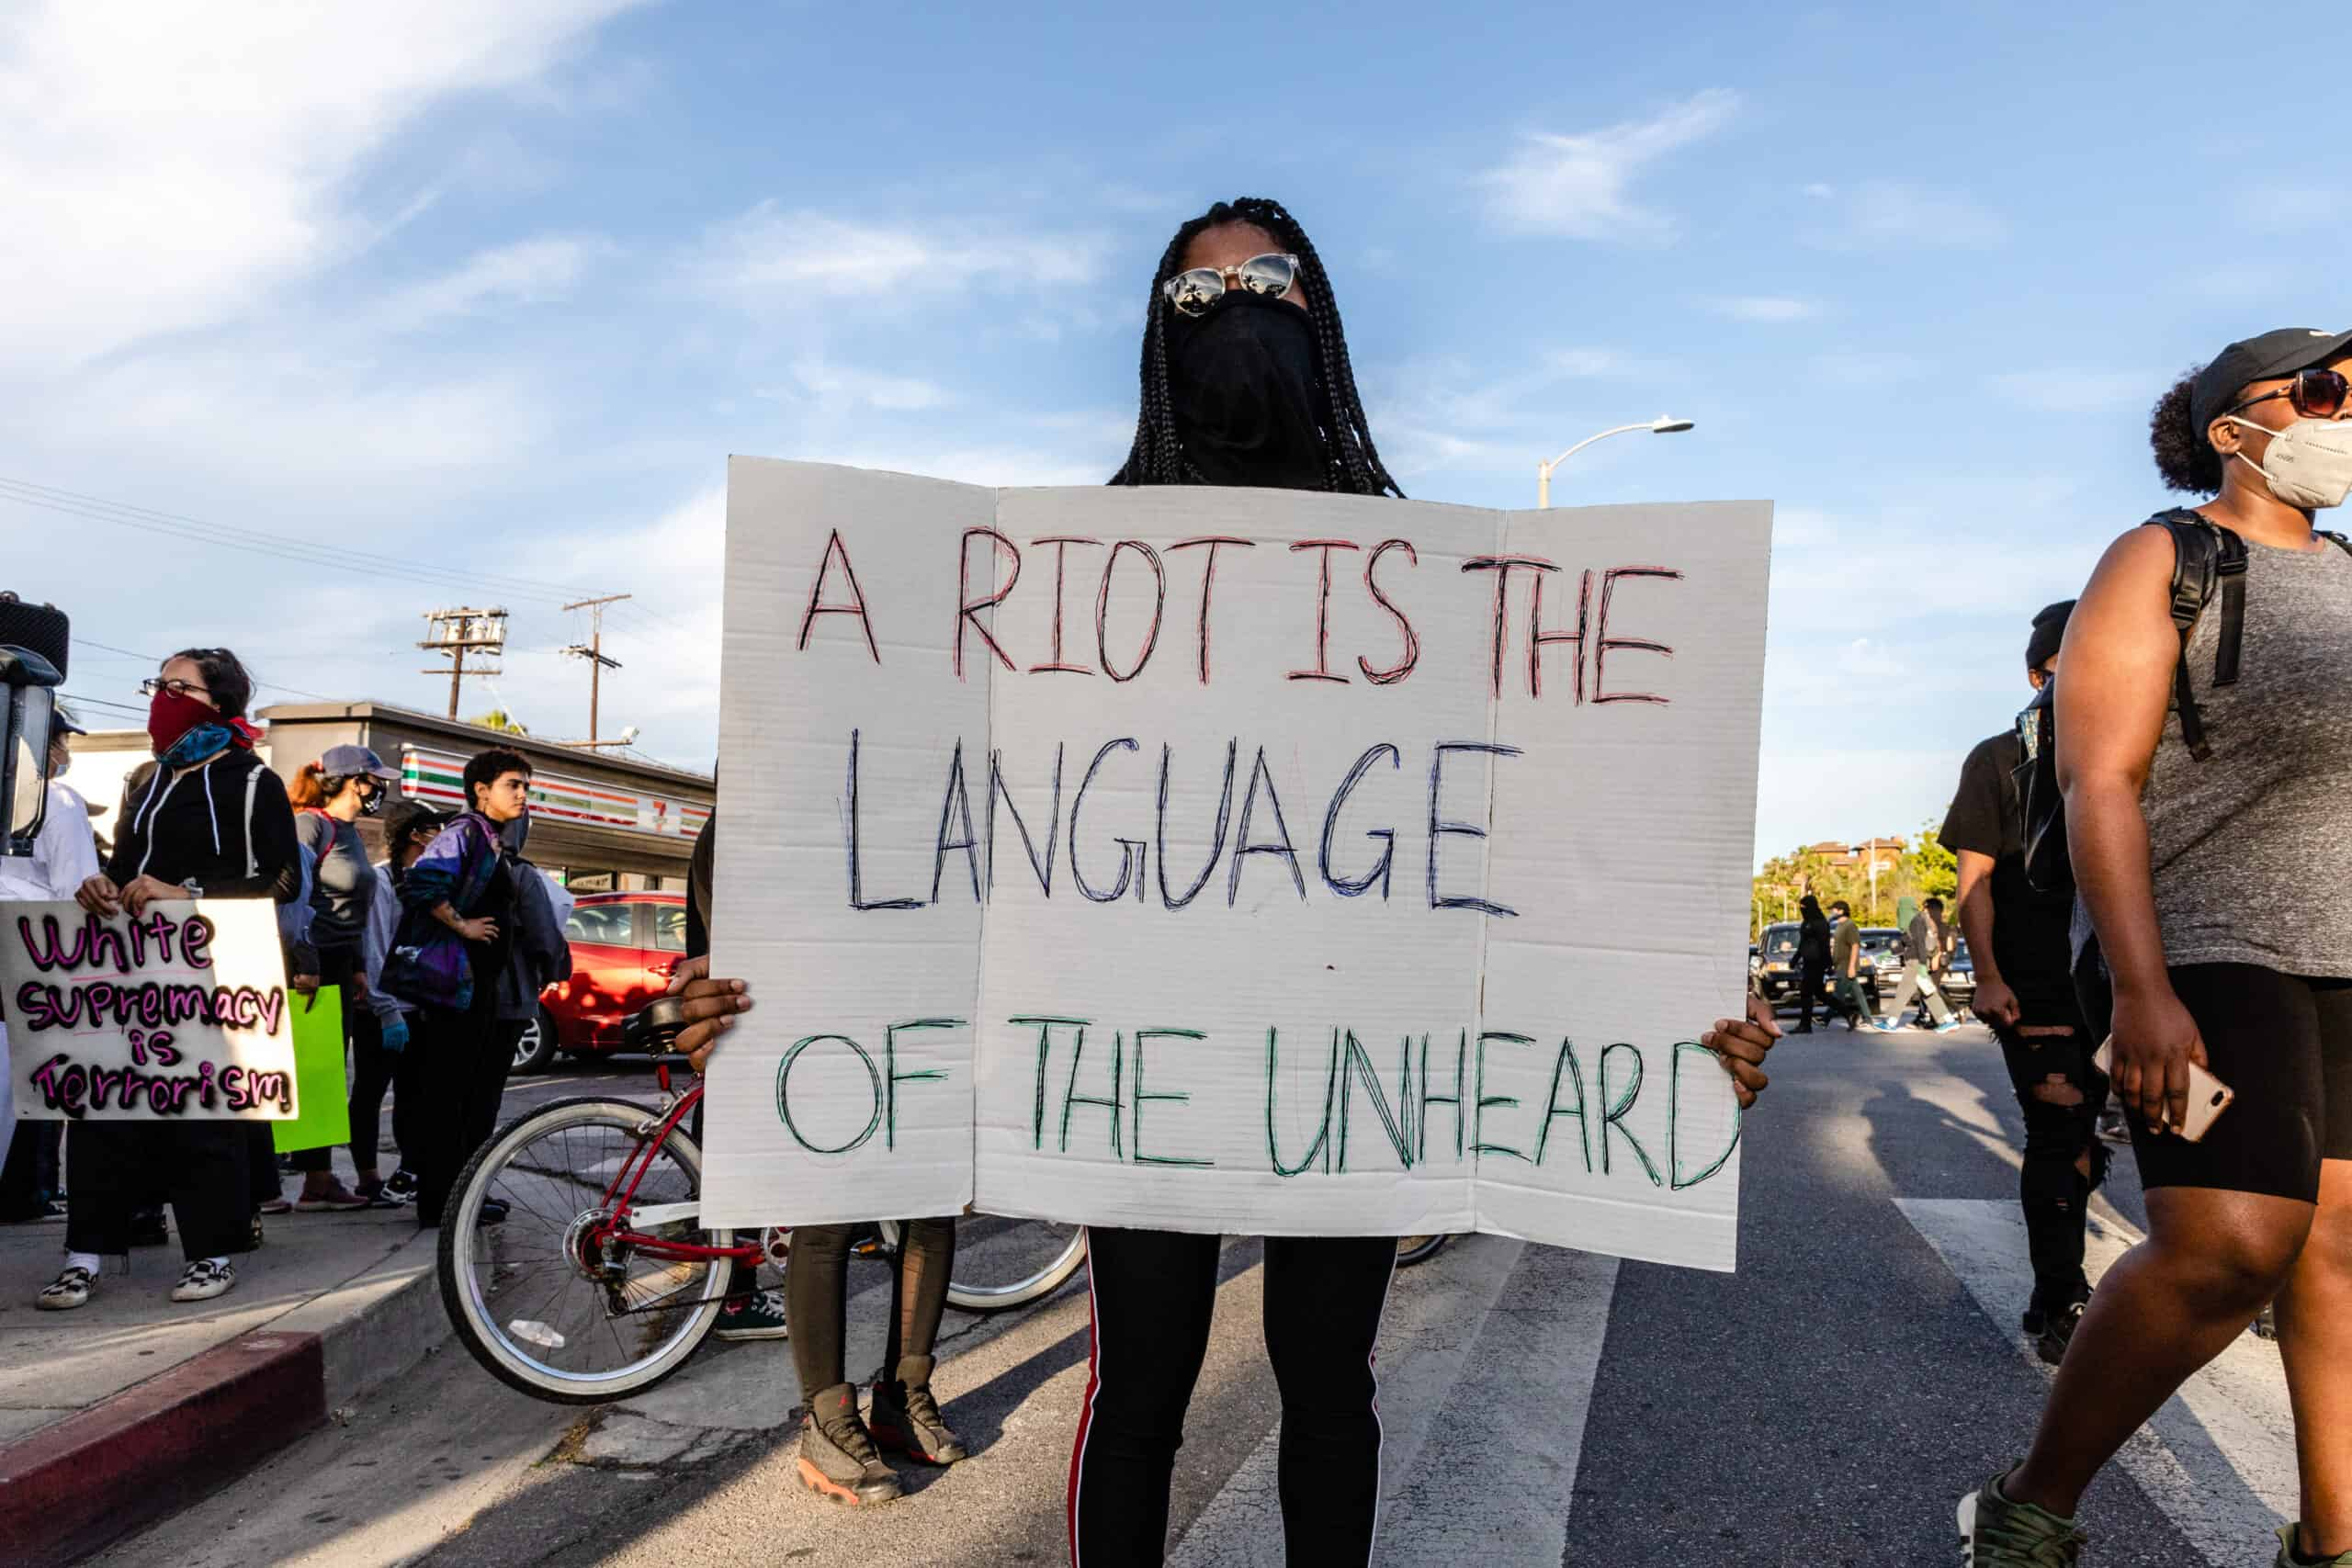 Protestor holding sign that says A Riot is the Language of the Unheard